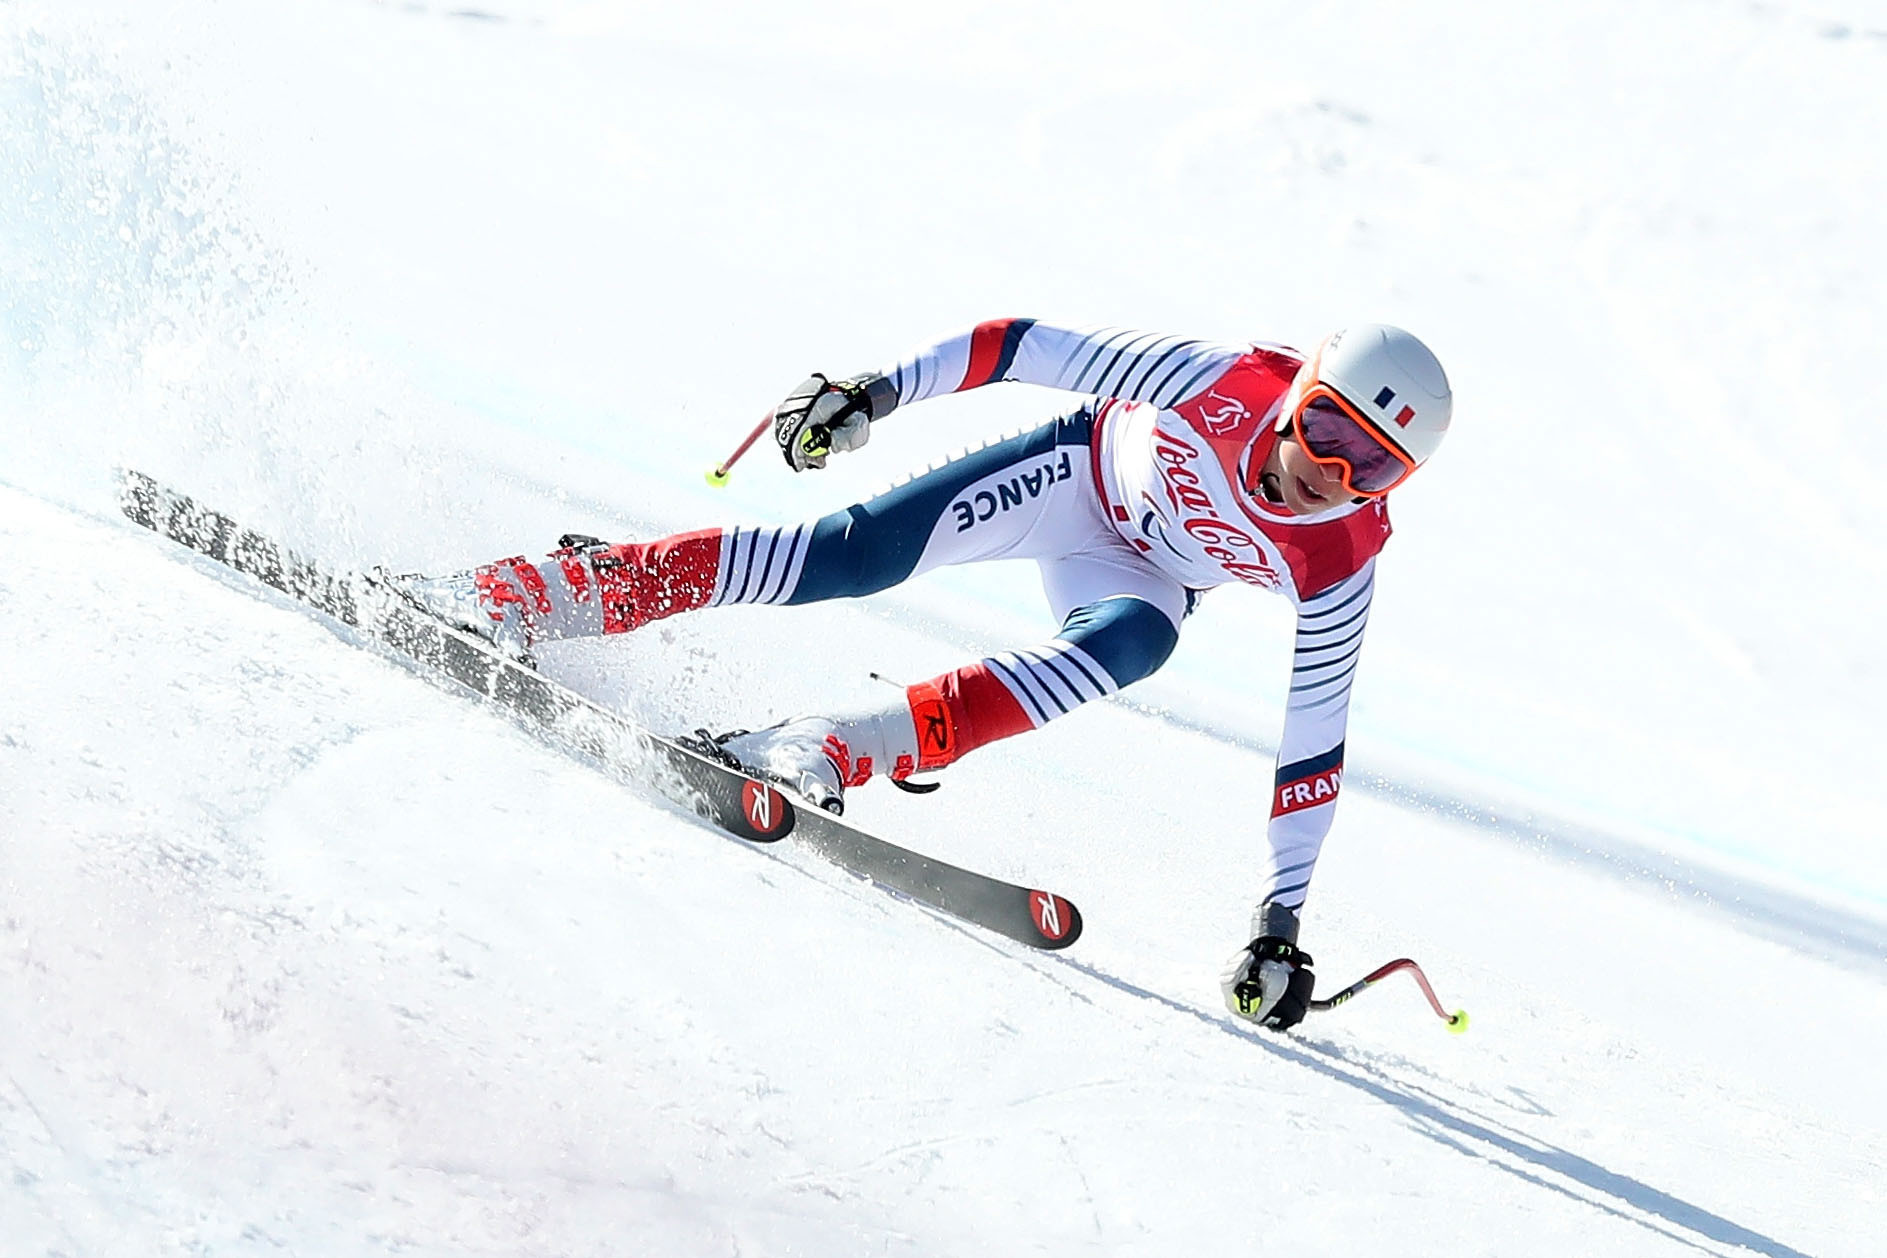 France's four-times Paralympic silver medallist Arthur Bauchet had to settle for second place in the opening giant slalom race at the event in Leogang ©Getty Images